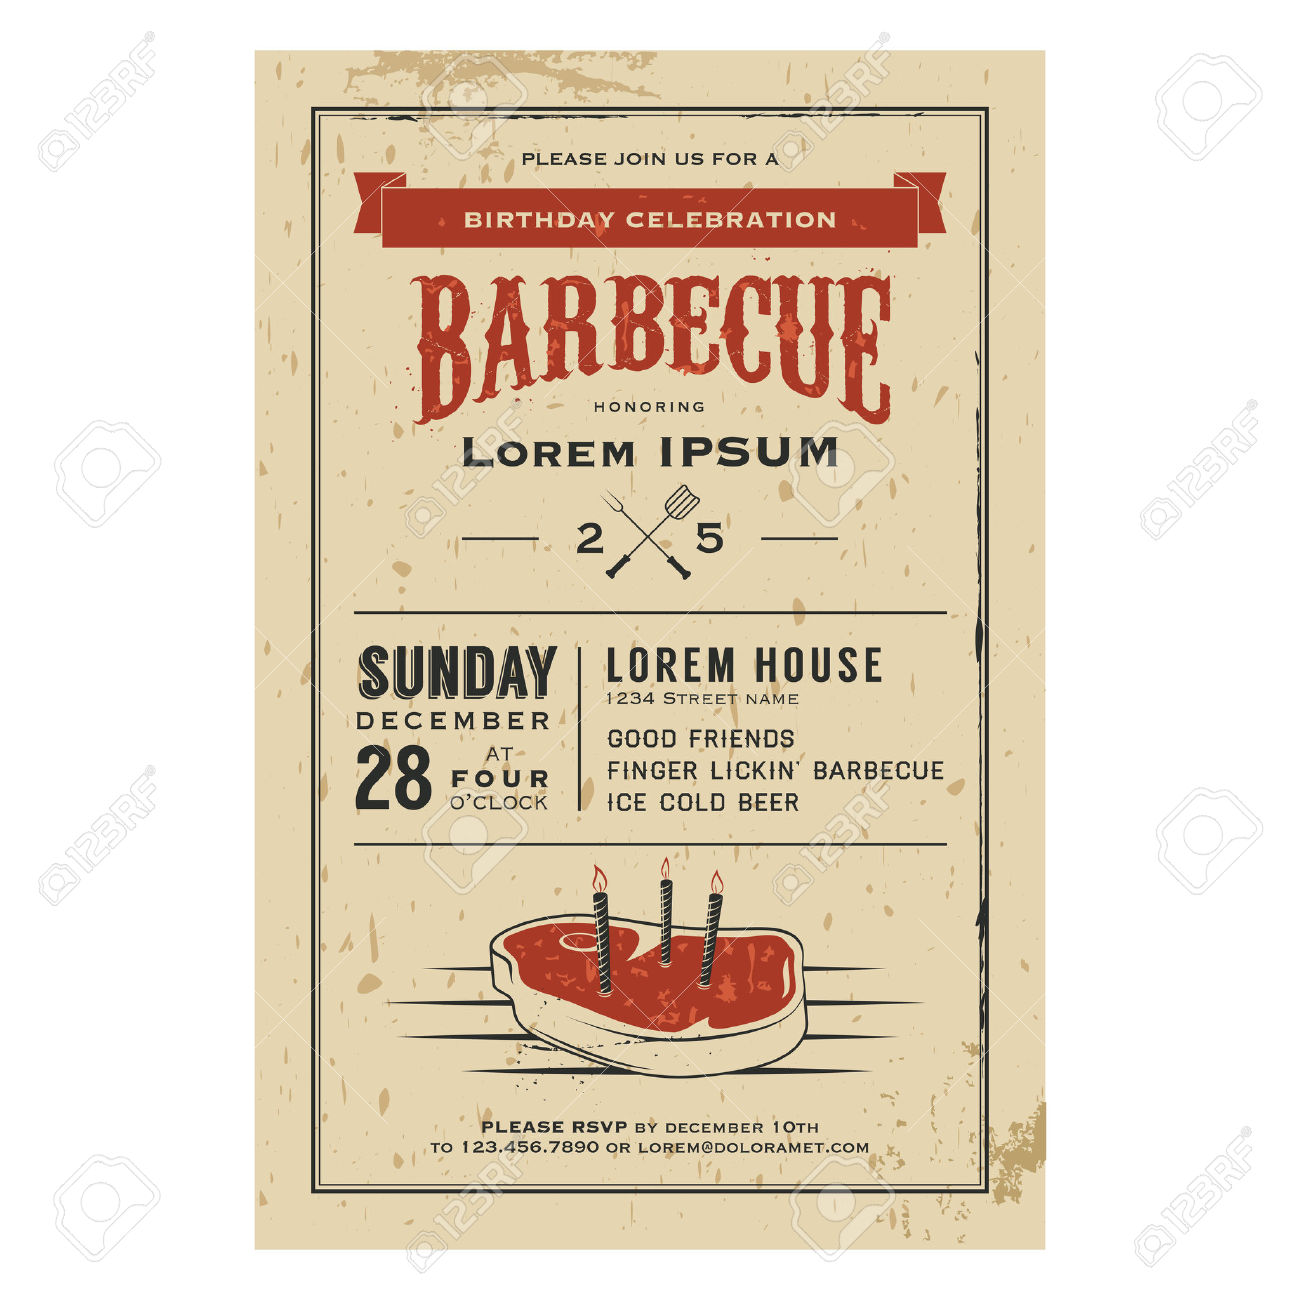 Vintage Birthday Party Barbecue Invitation Royalty Free Cliparts